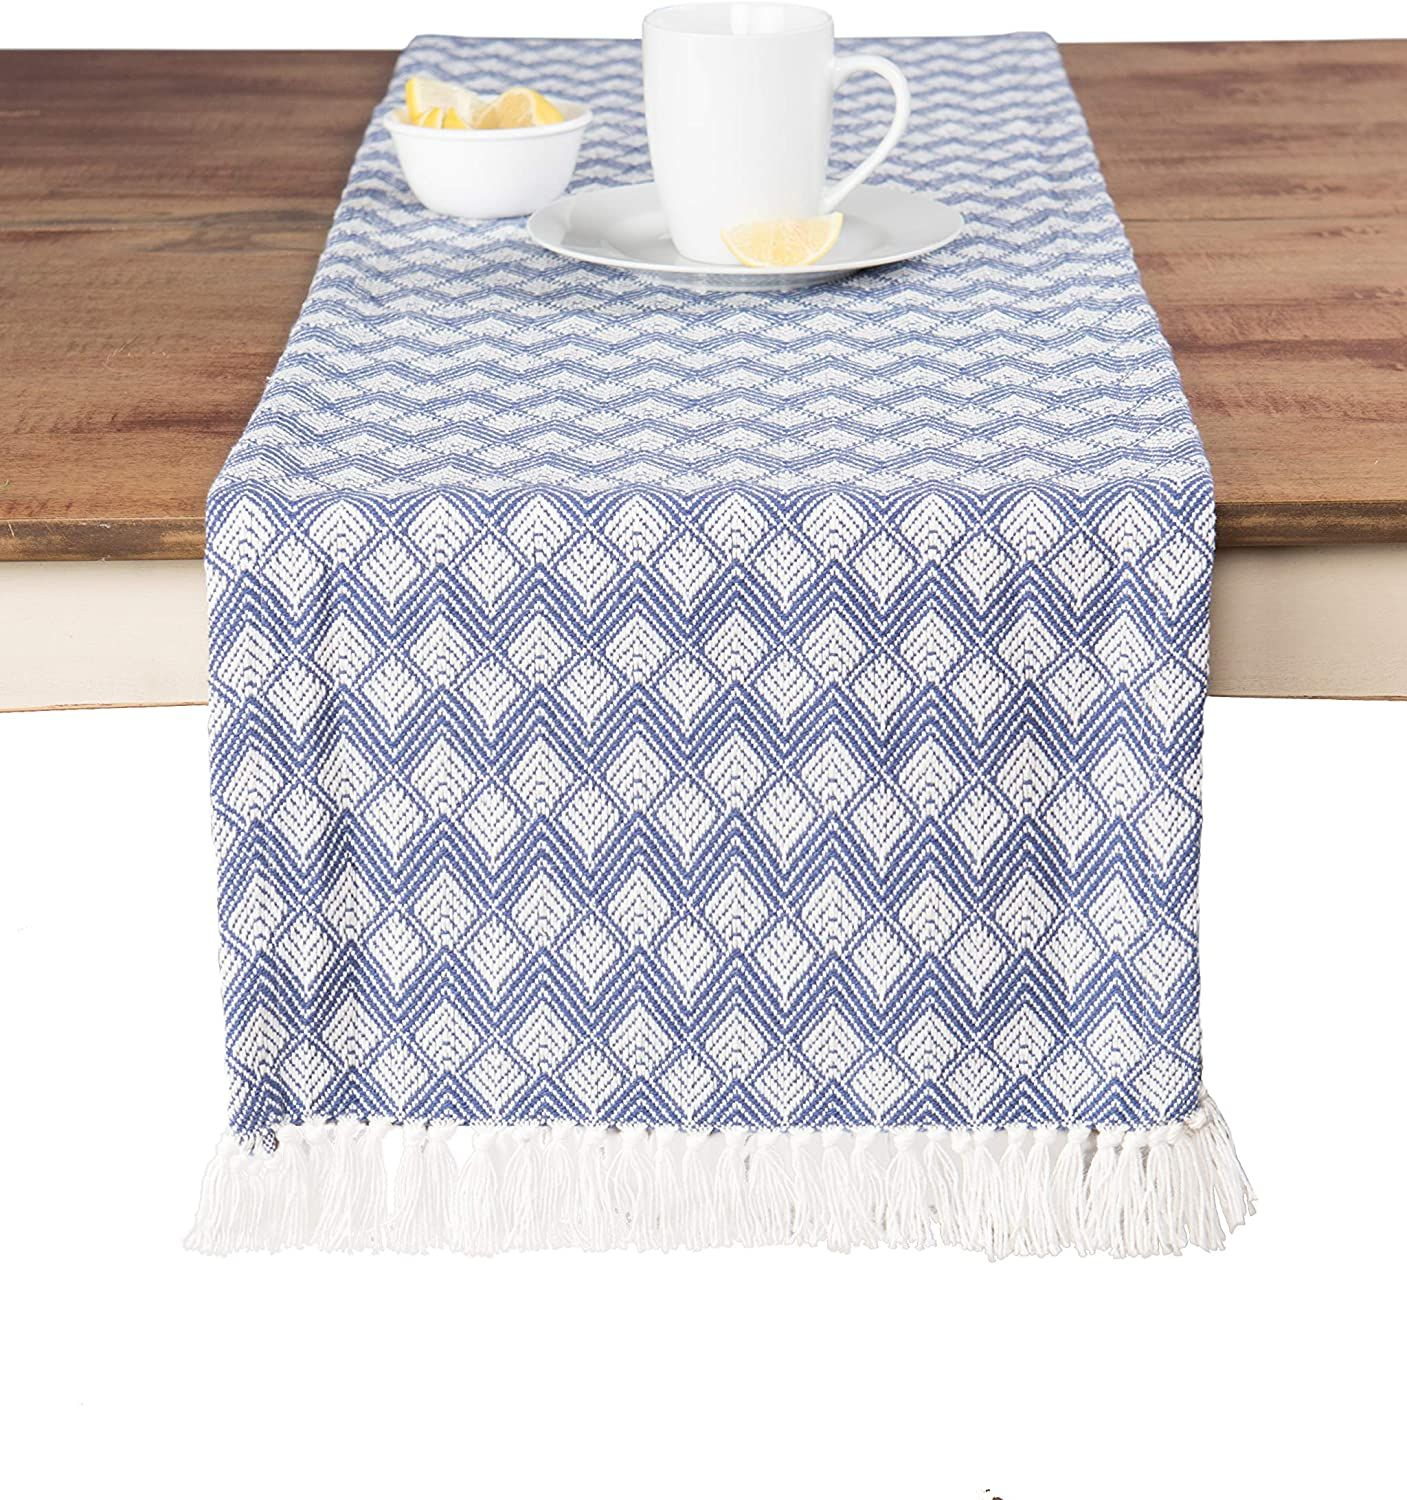 Photo of Sticky Toffee Cotton Woven Table Runner with Fringe, Scallop…